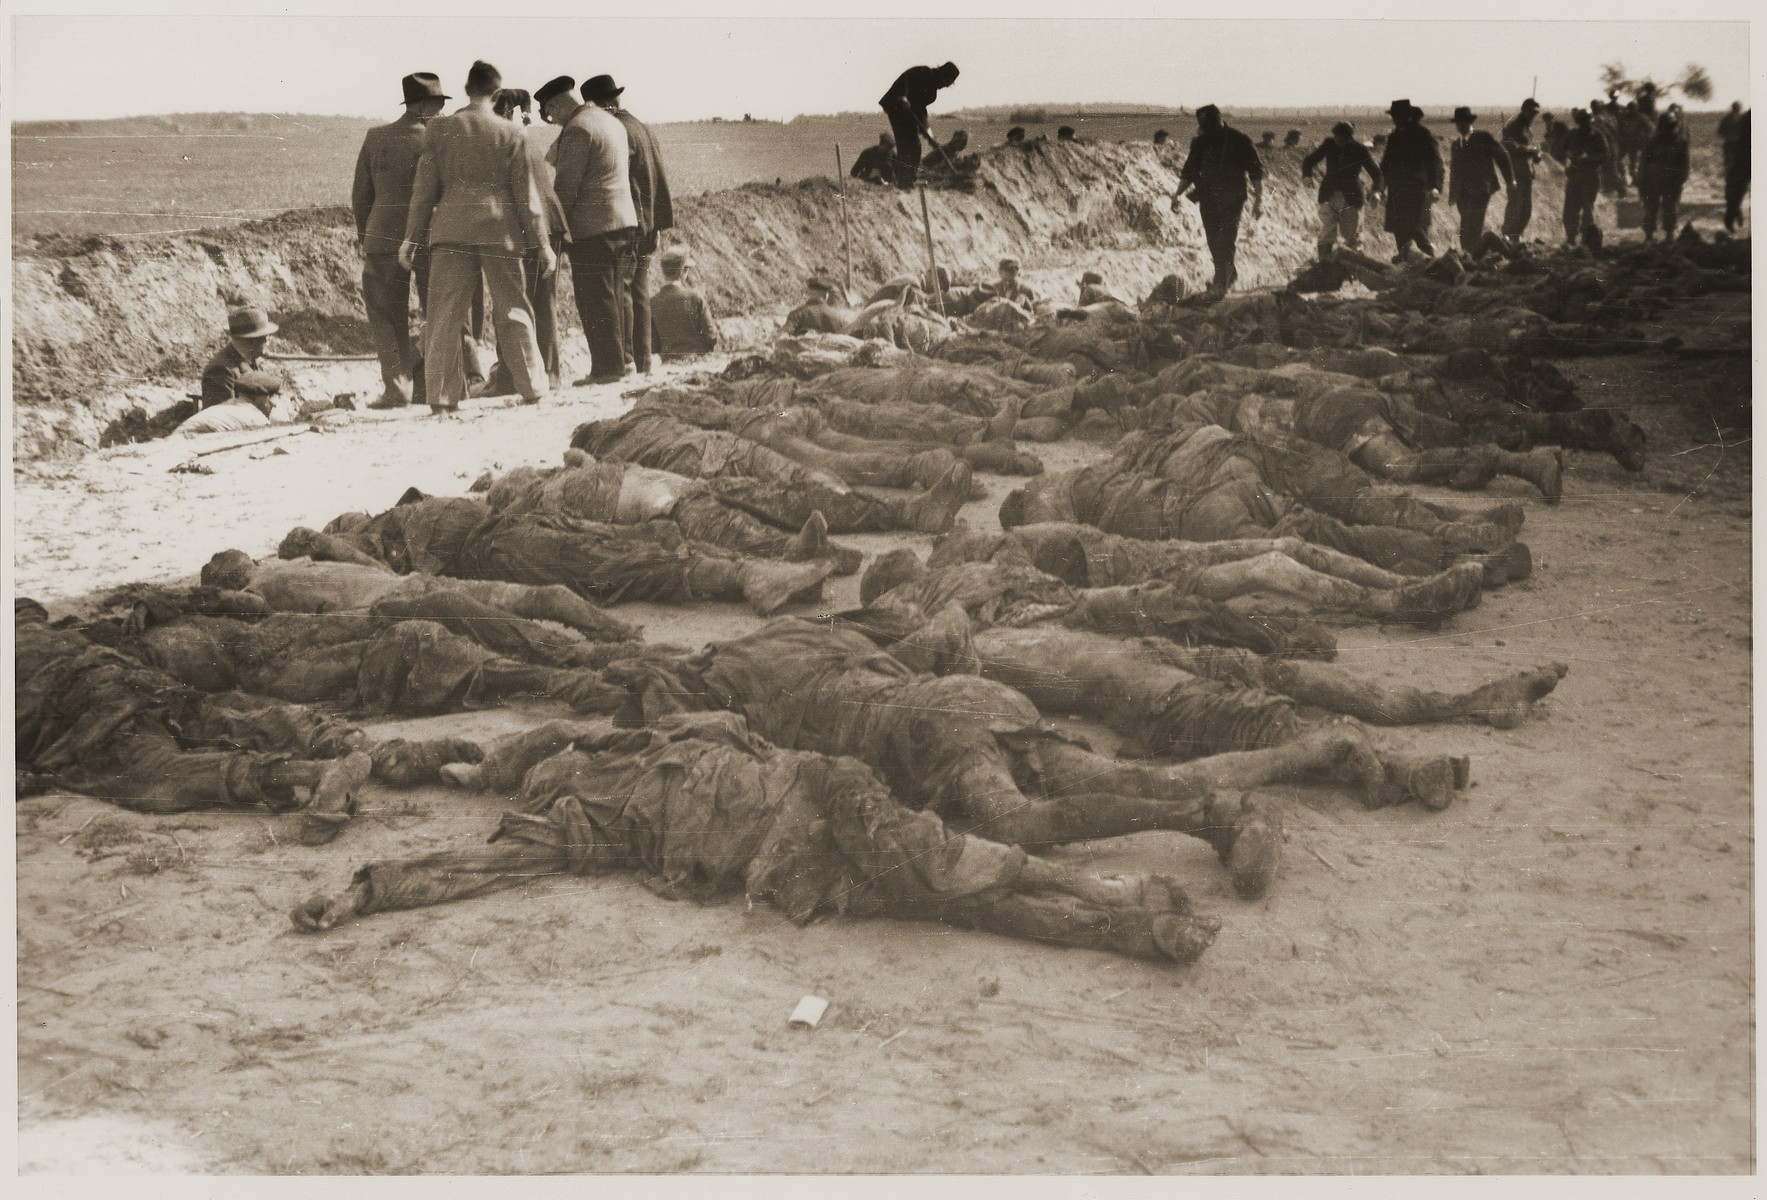 Under the supervision of American soldiers, German civilians exhume the bodies of concentration camp prisoners killed by the SS in a barn just outside of Gardelegen.